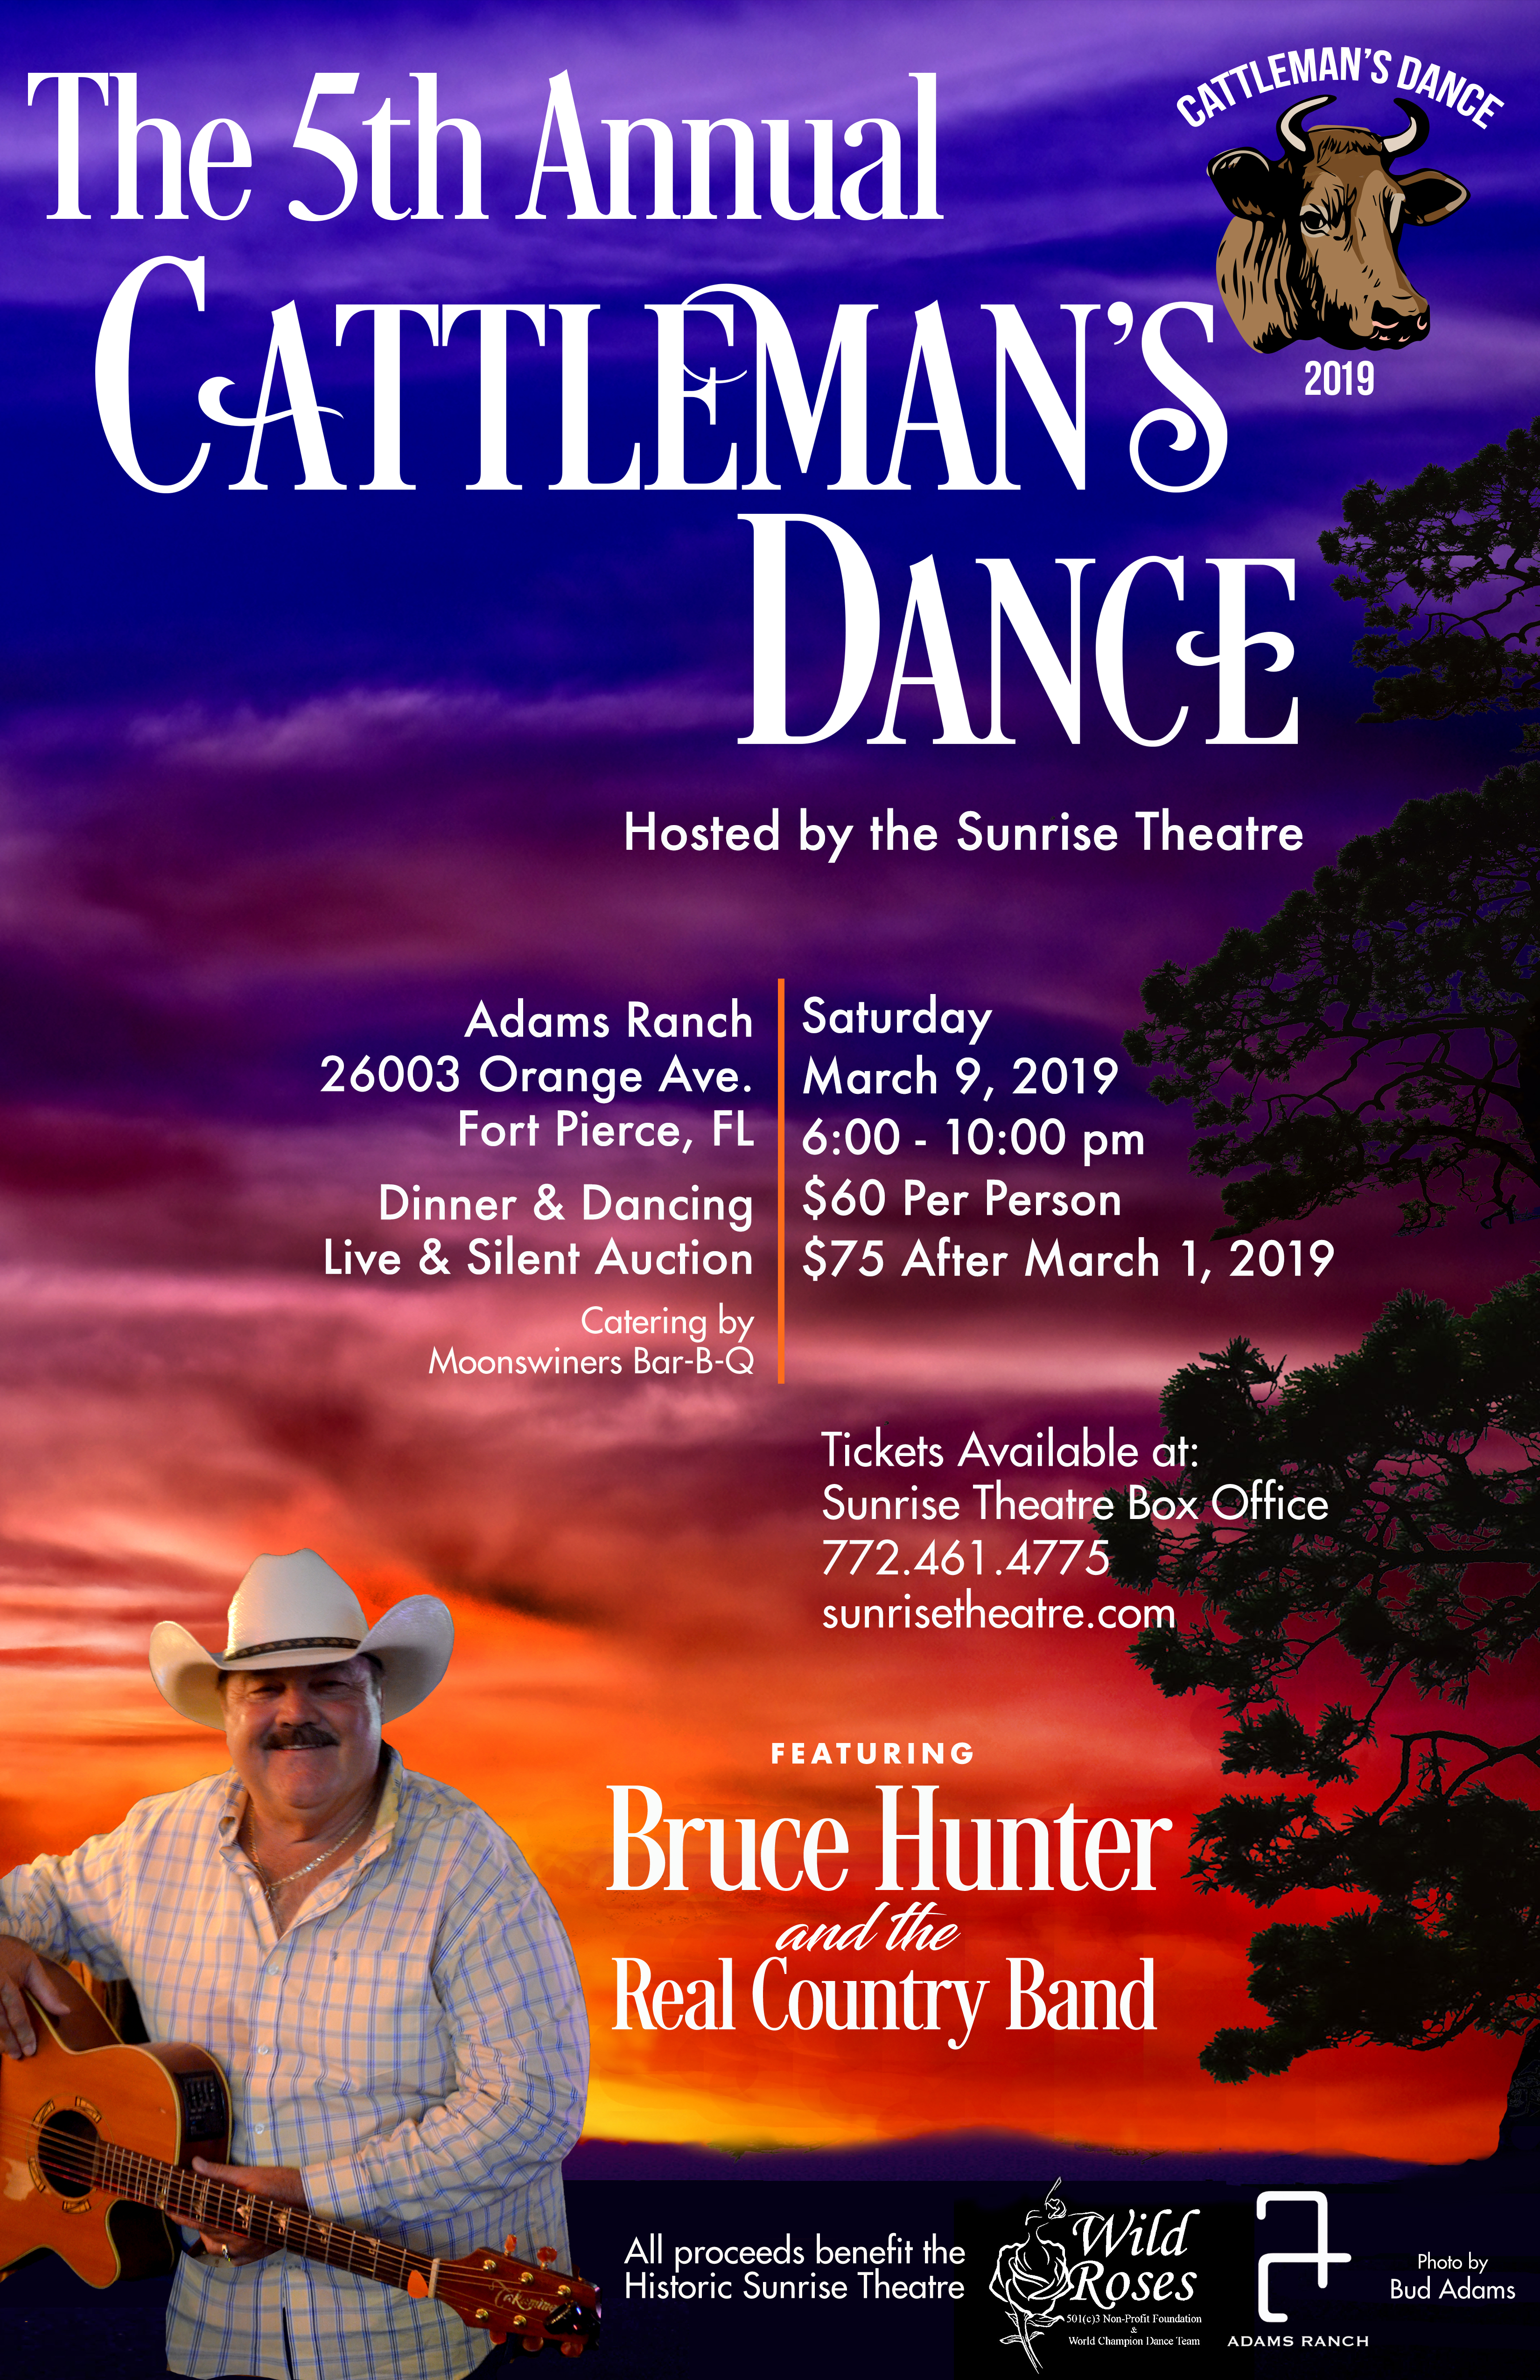 The 5th Annual Cattleman's Dance